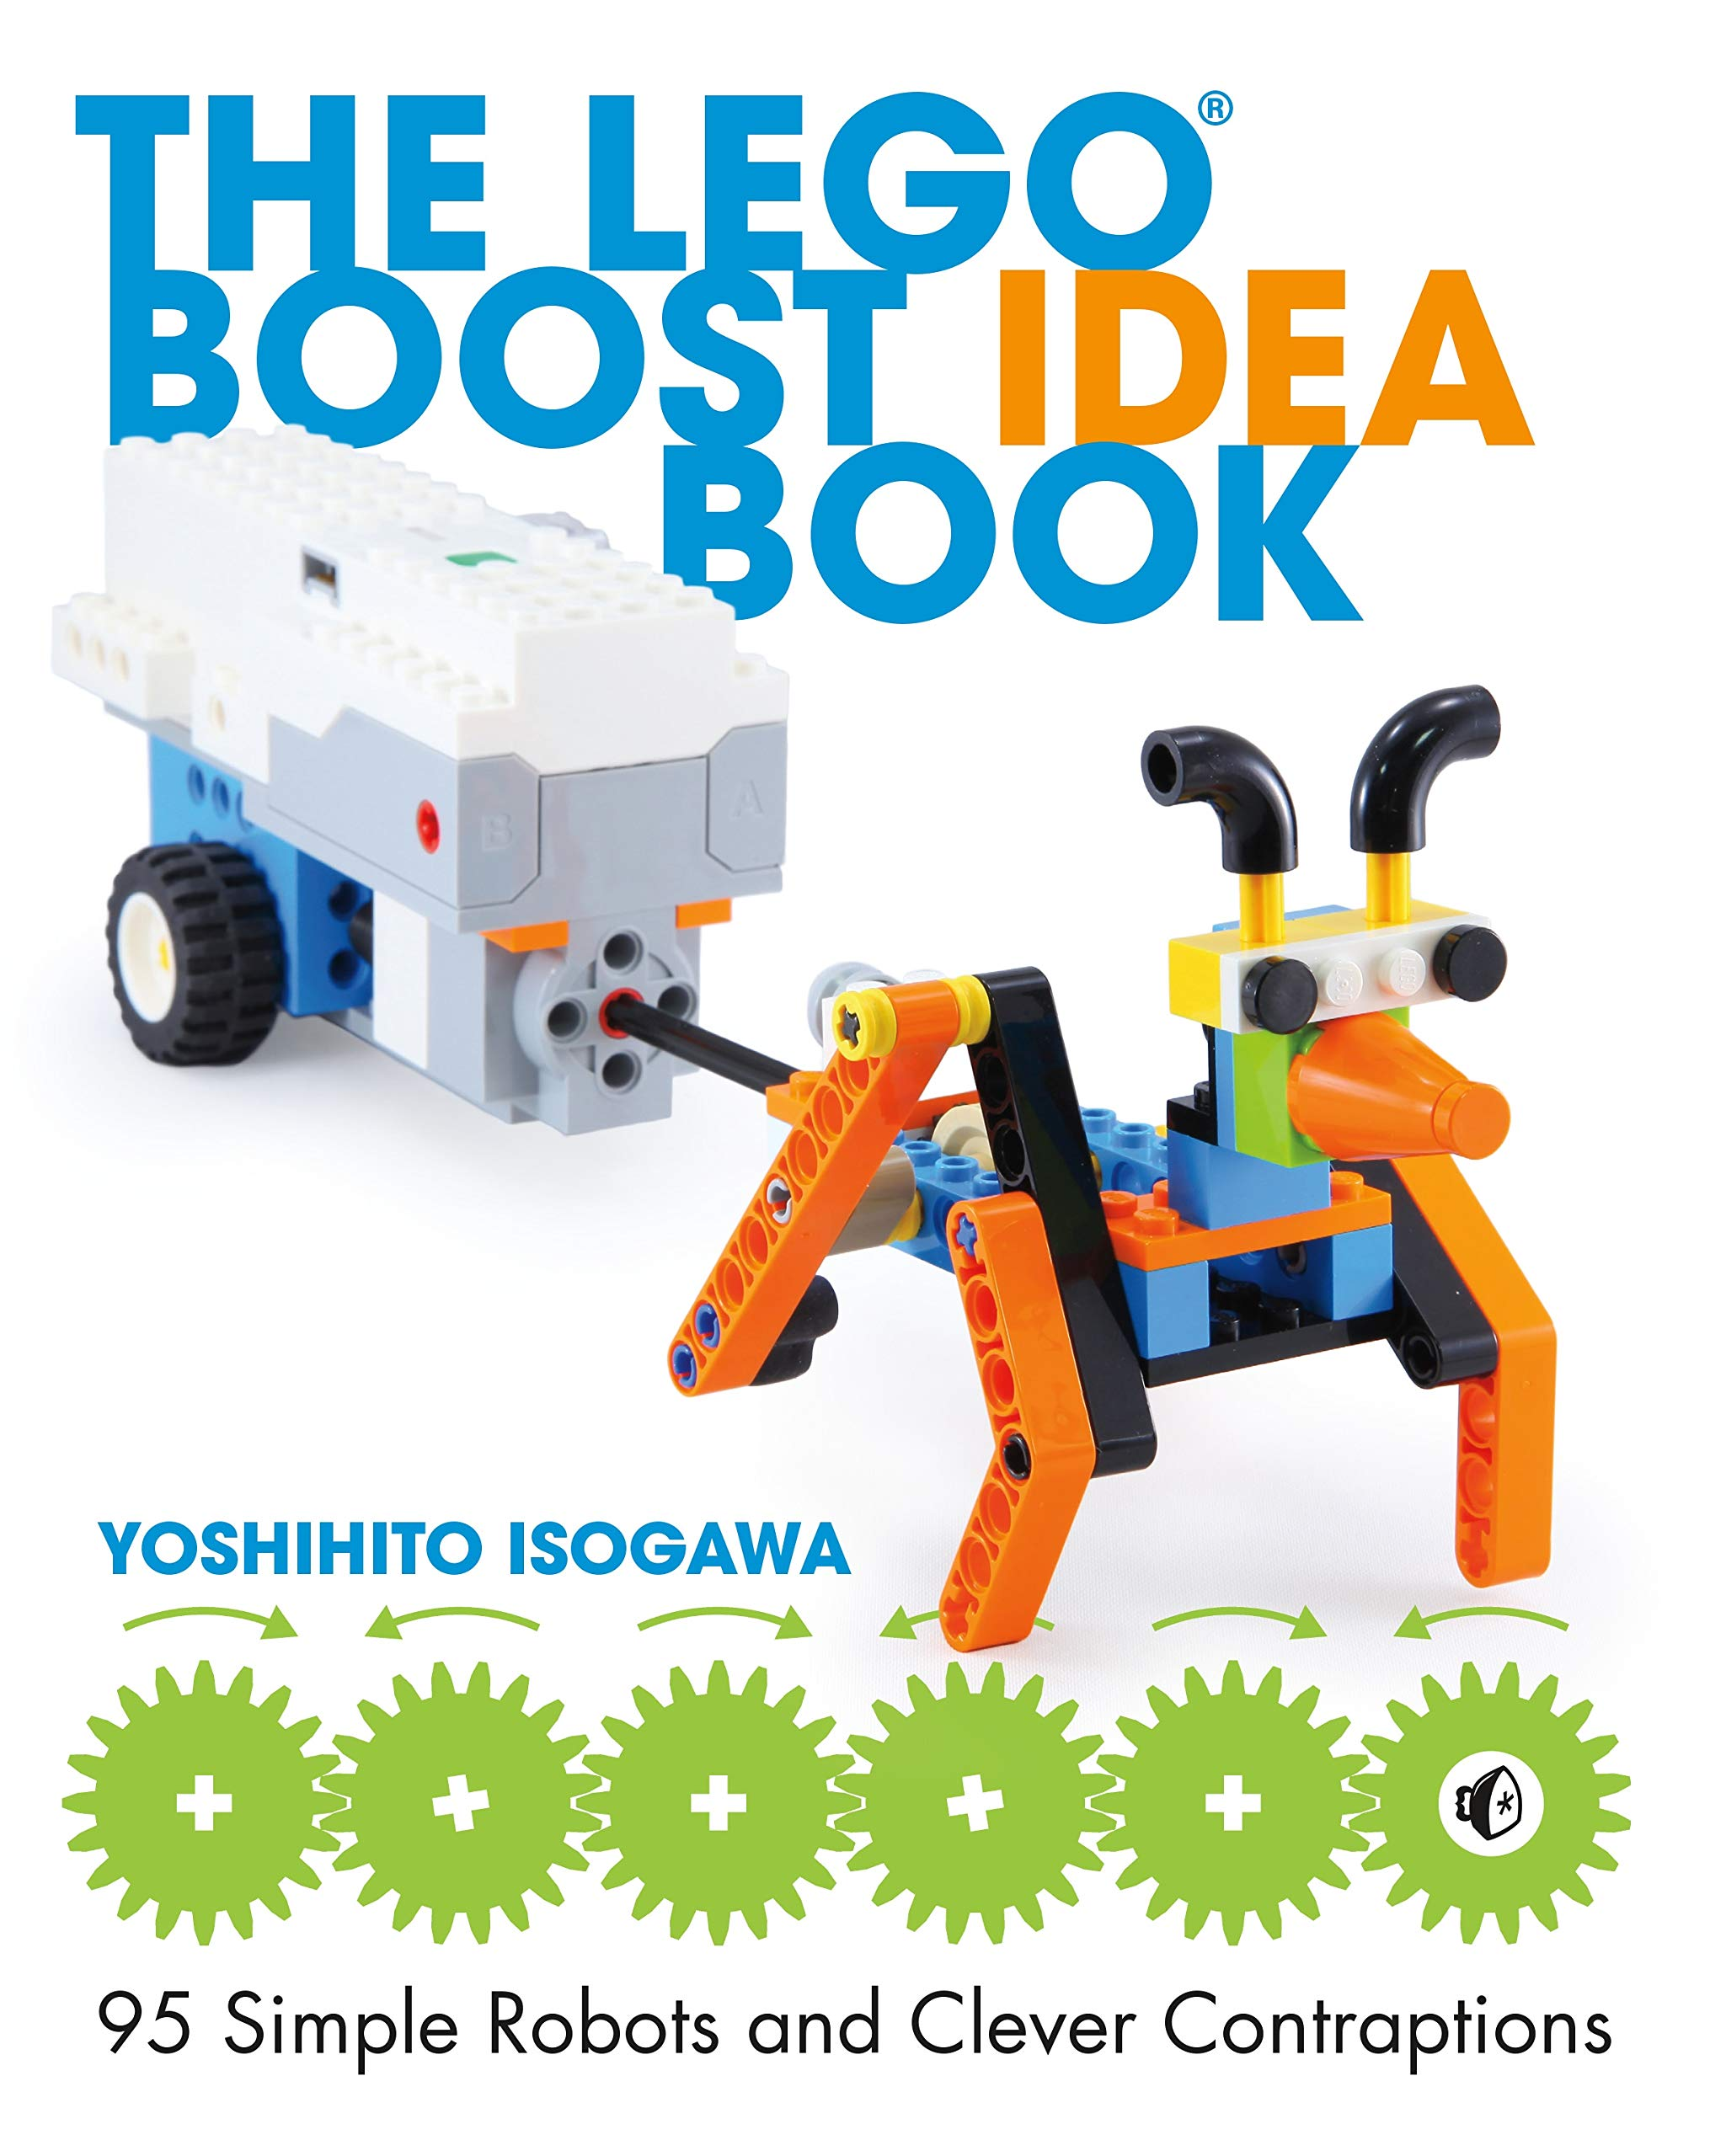 The Lego Boost Idea Book 95 Simple Robots And Hints For Making More